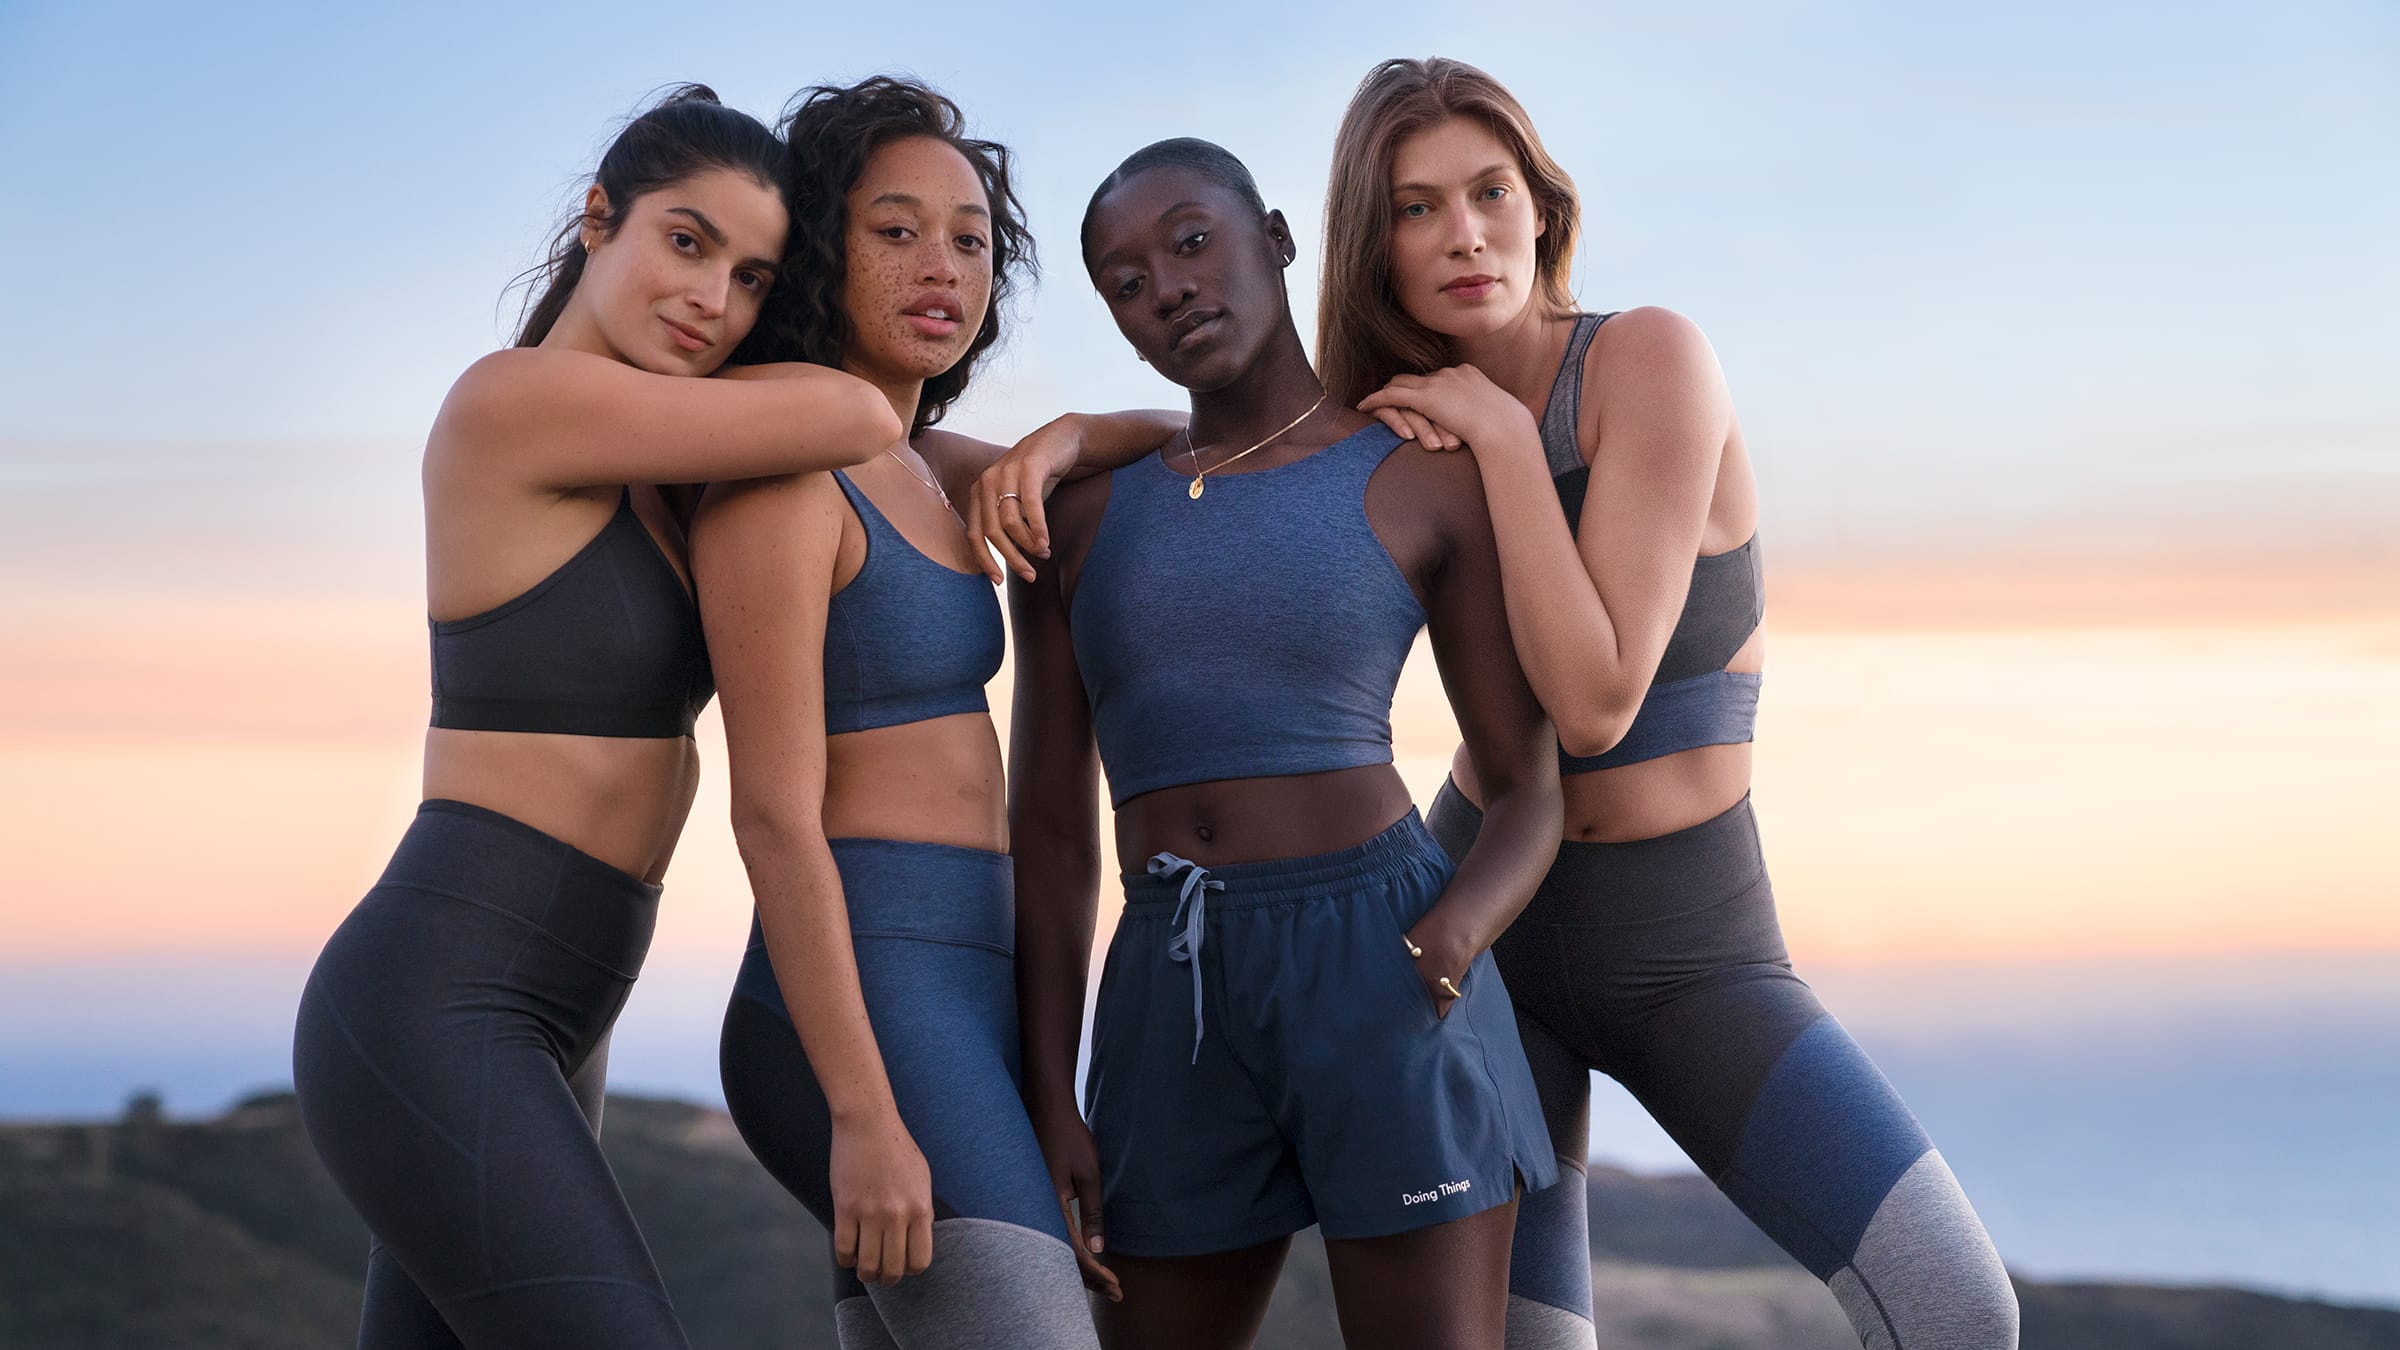 Outdoor Voices - And lastly, Outdoor voices. Their deep caring about how and what they make all of their clothing out of, means they are a wonderful fit for your swimsuit hunt. They also have a range of swimwear fit to whatever specific activity you may be doing in the water, and just released a line with Teva for real water adventures. Shop their collection.